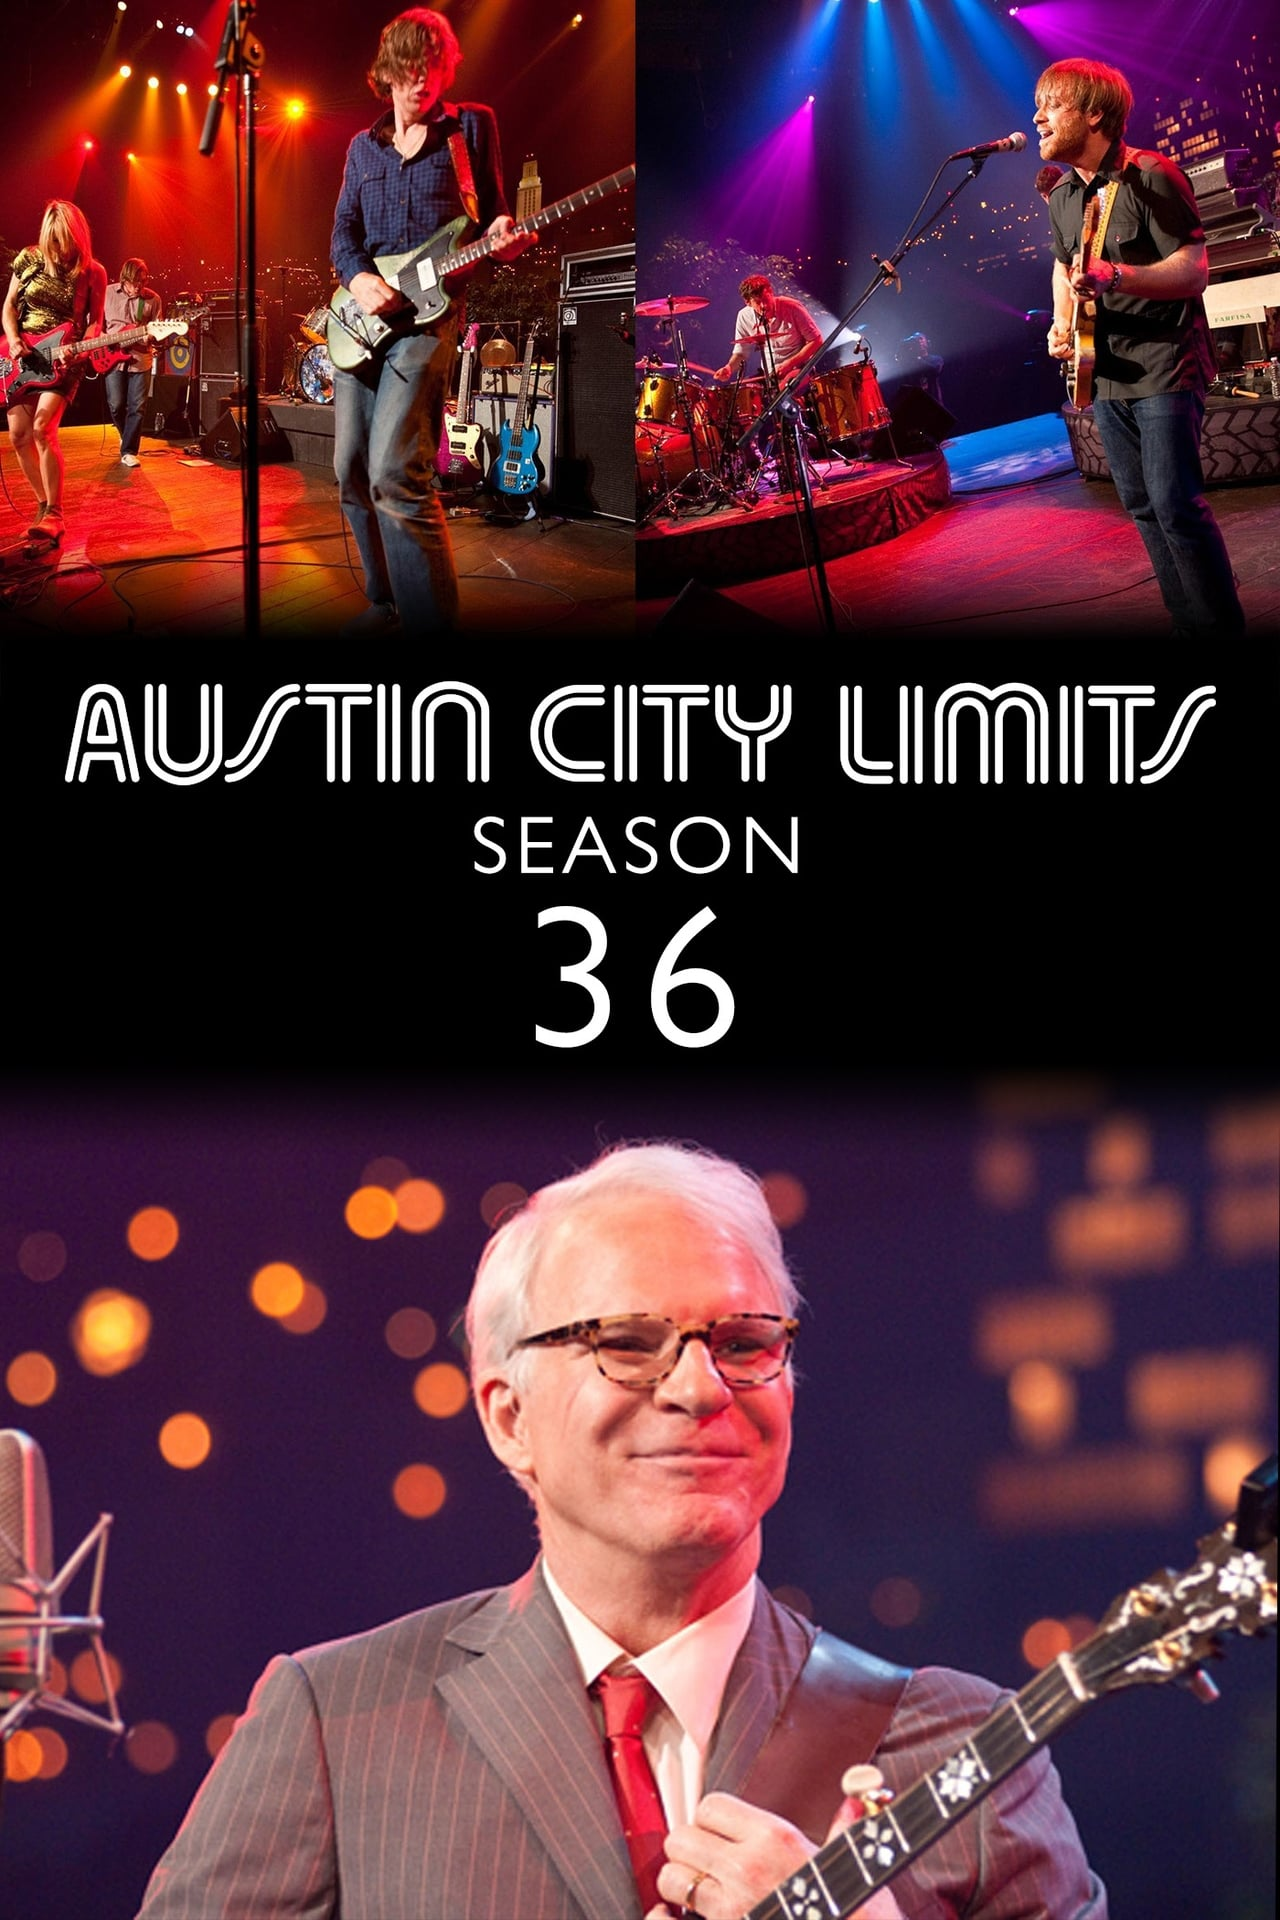 Austin City Limits Season 36 (2010) putlockers cafe